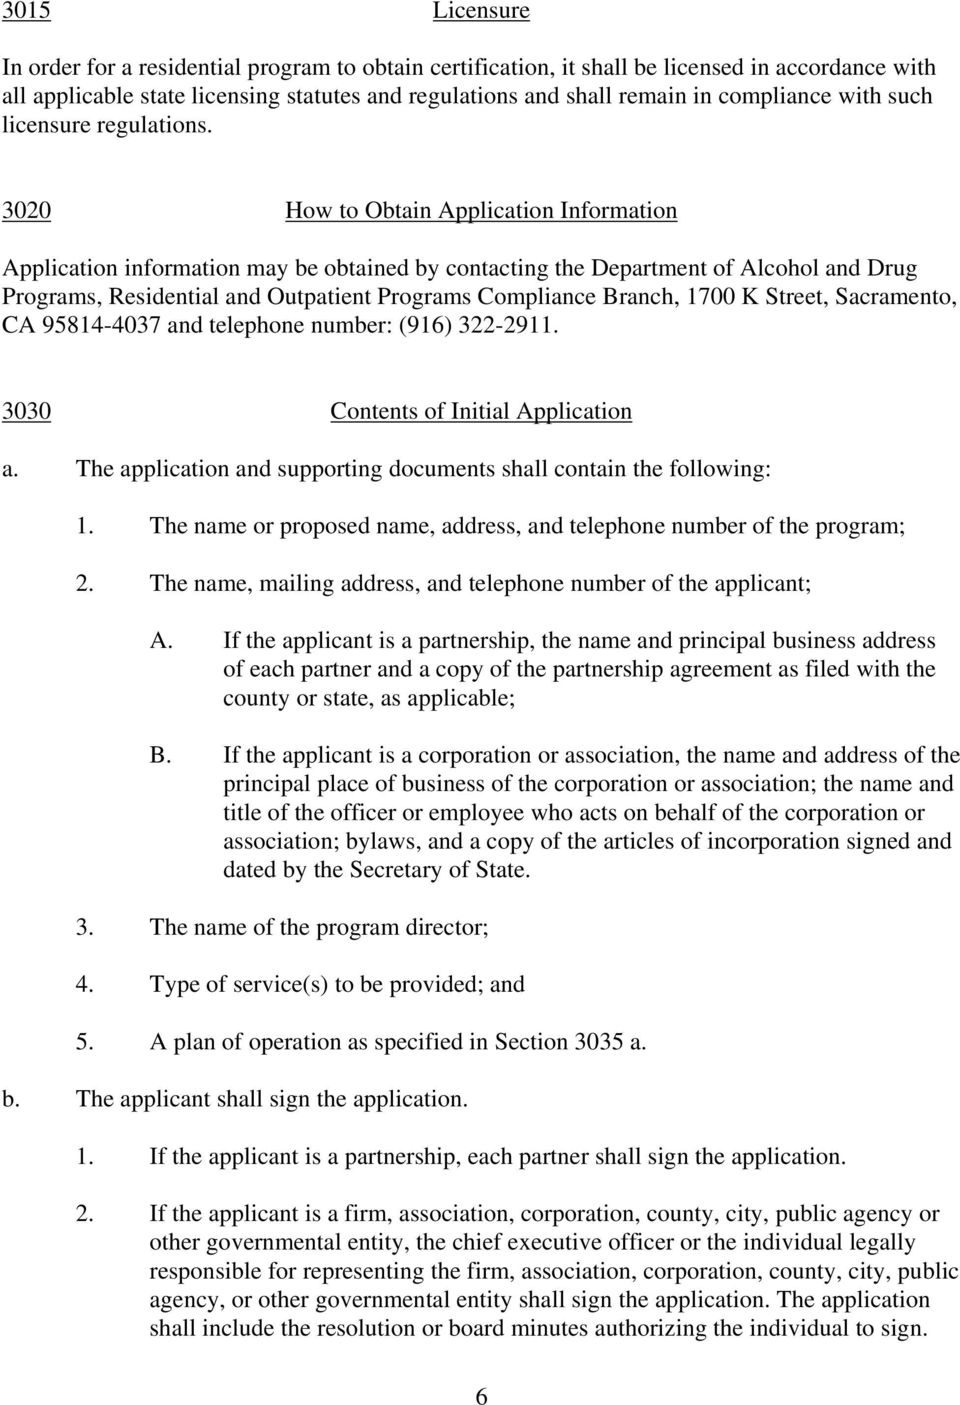 3020 How to Obtain Application Information Application information may be obtained by contacting the Department of Alcohol and Drug Programs, Residential and Outpatient Programs Compliance Branch,